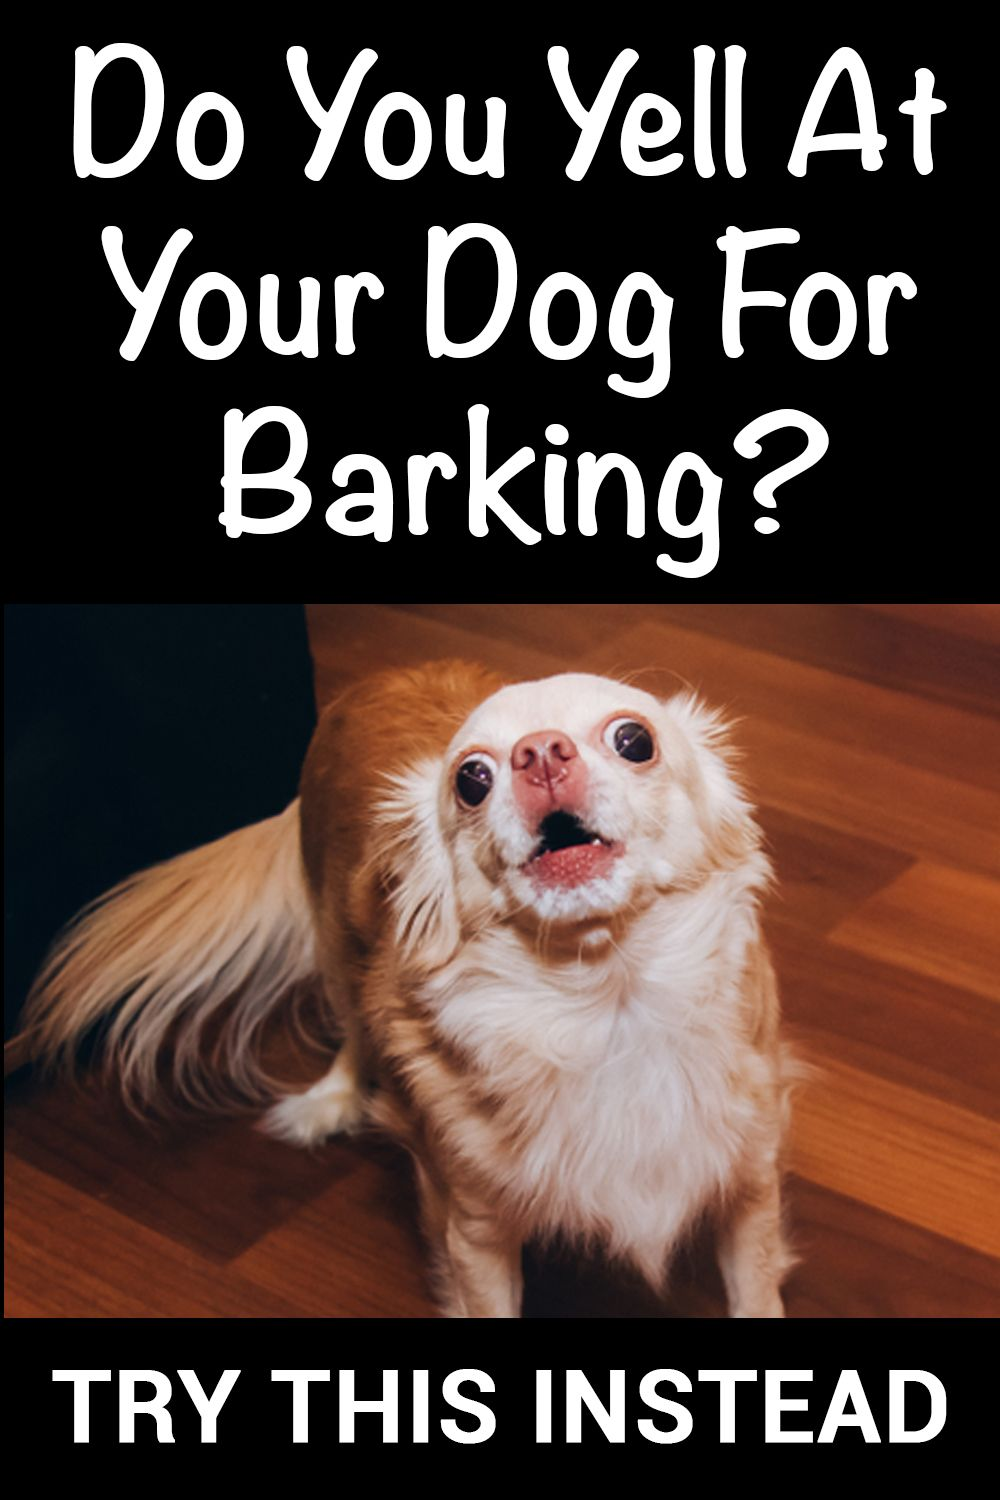 Do You Yell At Your Dog For Barking?